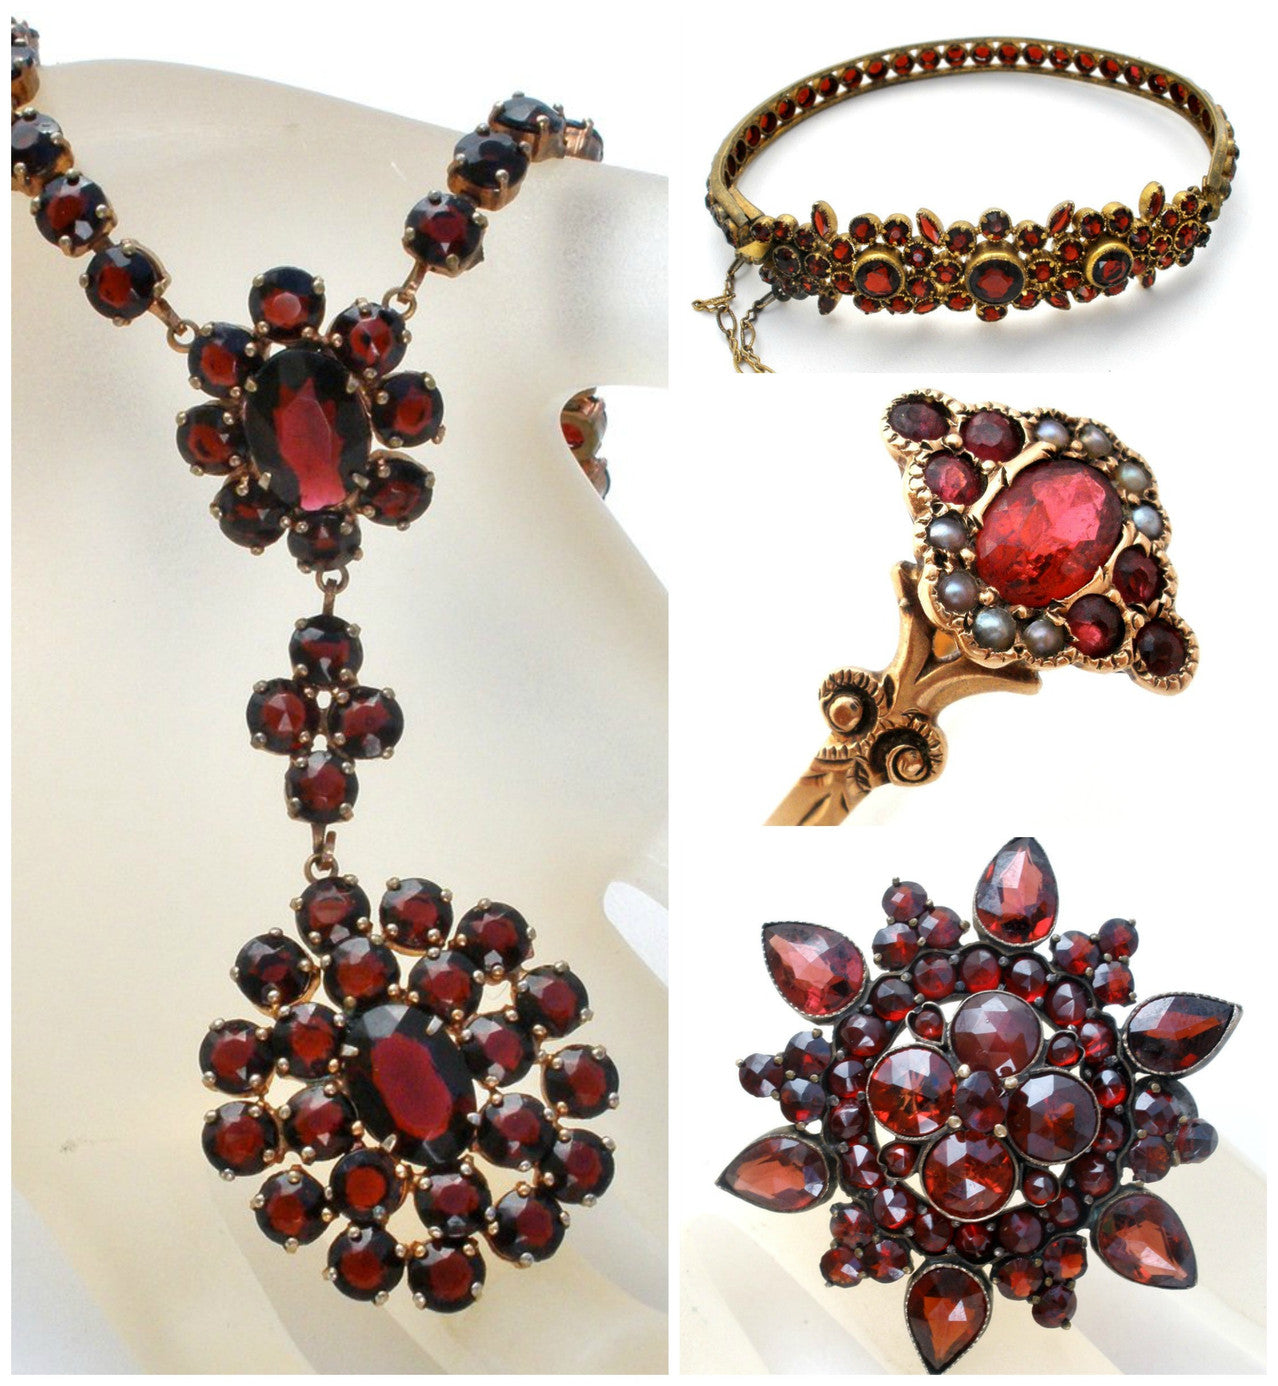 Bohemian Garnets rubies victorian antique jewelry the jewelry lady's store